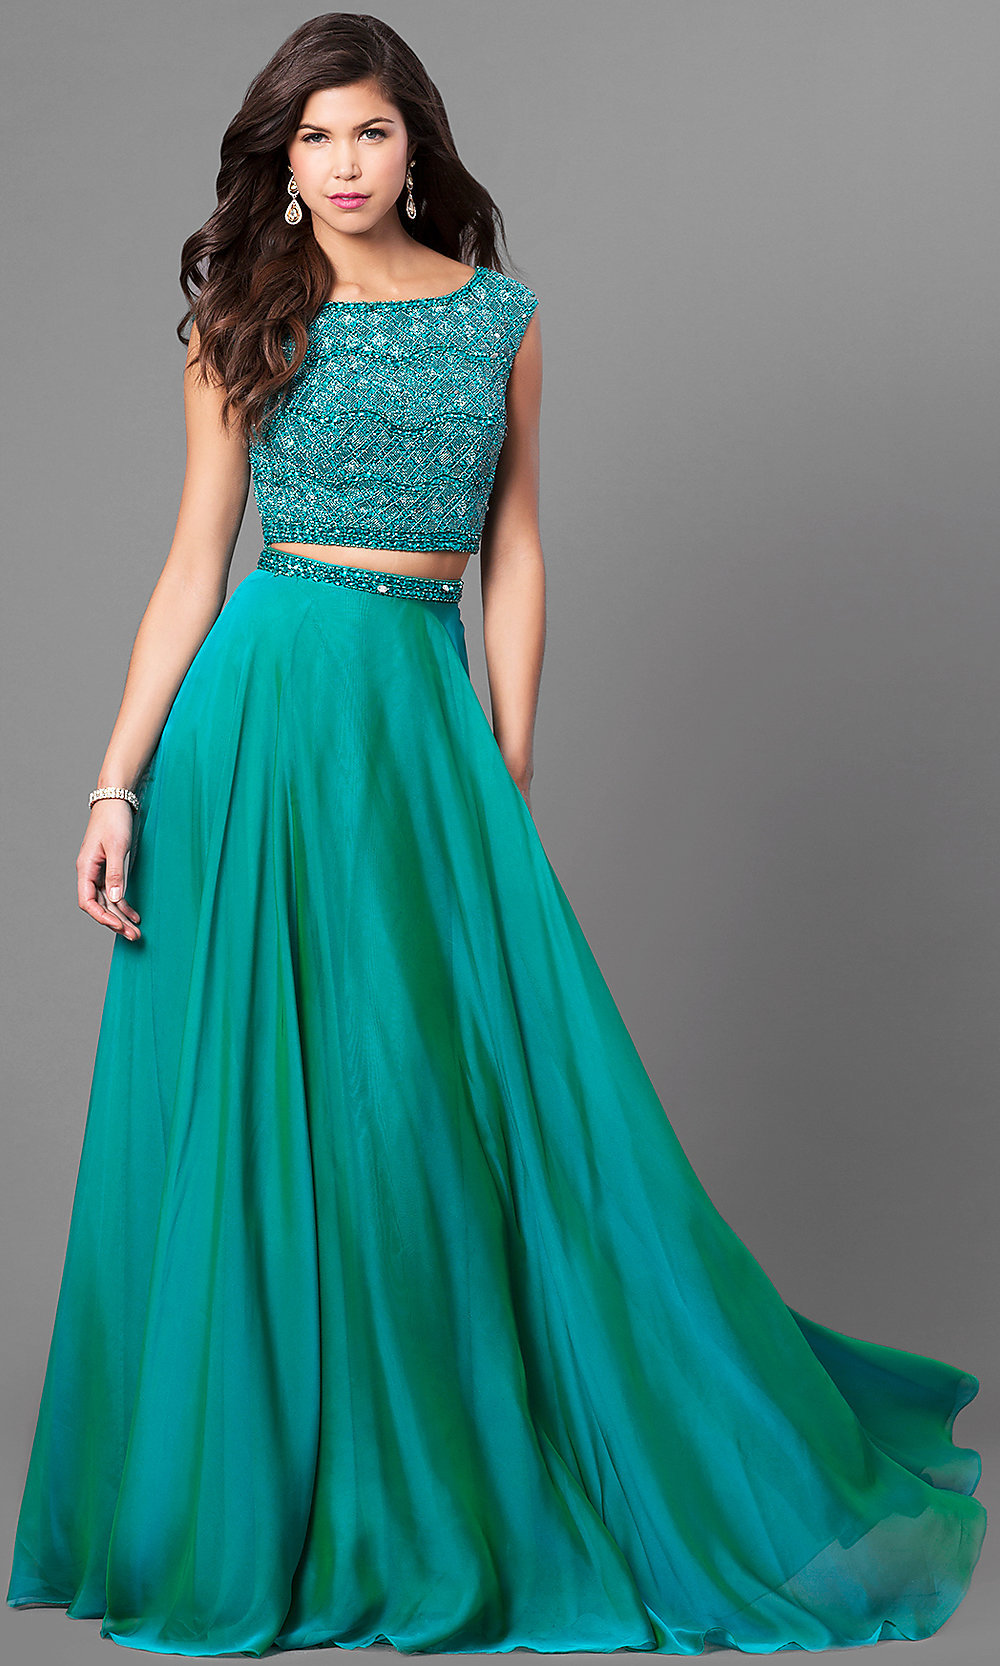 Embellished Two-Piece Sherri Hill Prom Dress -PromGirl